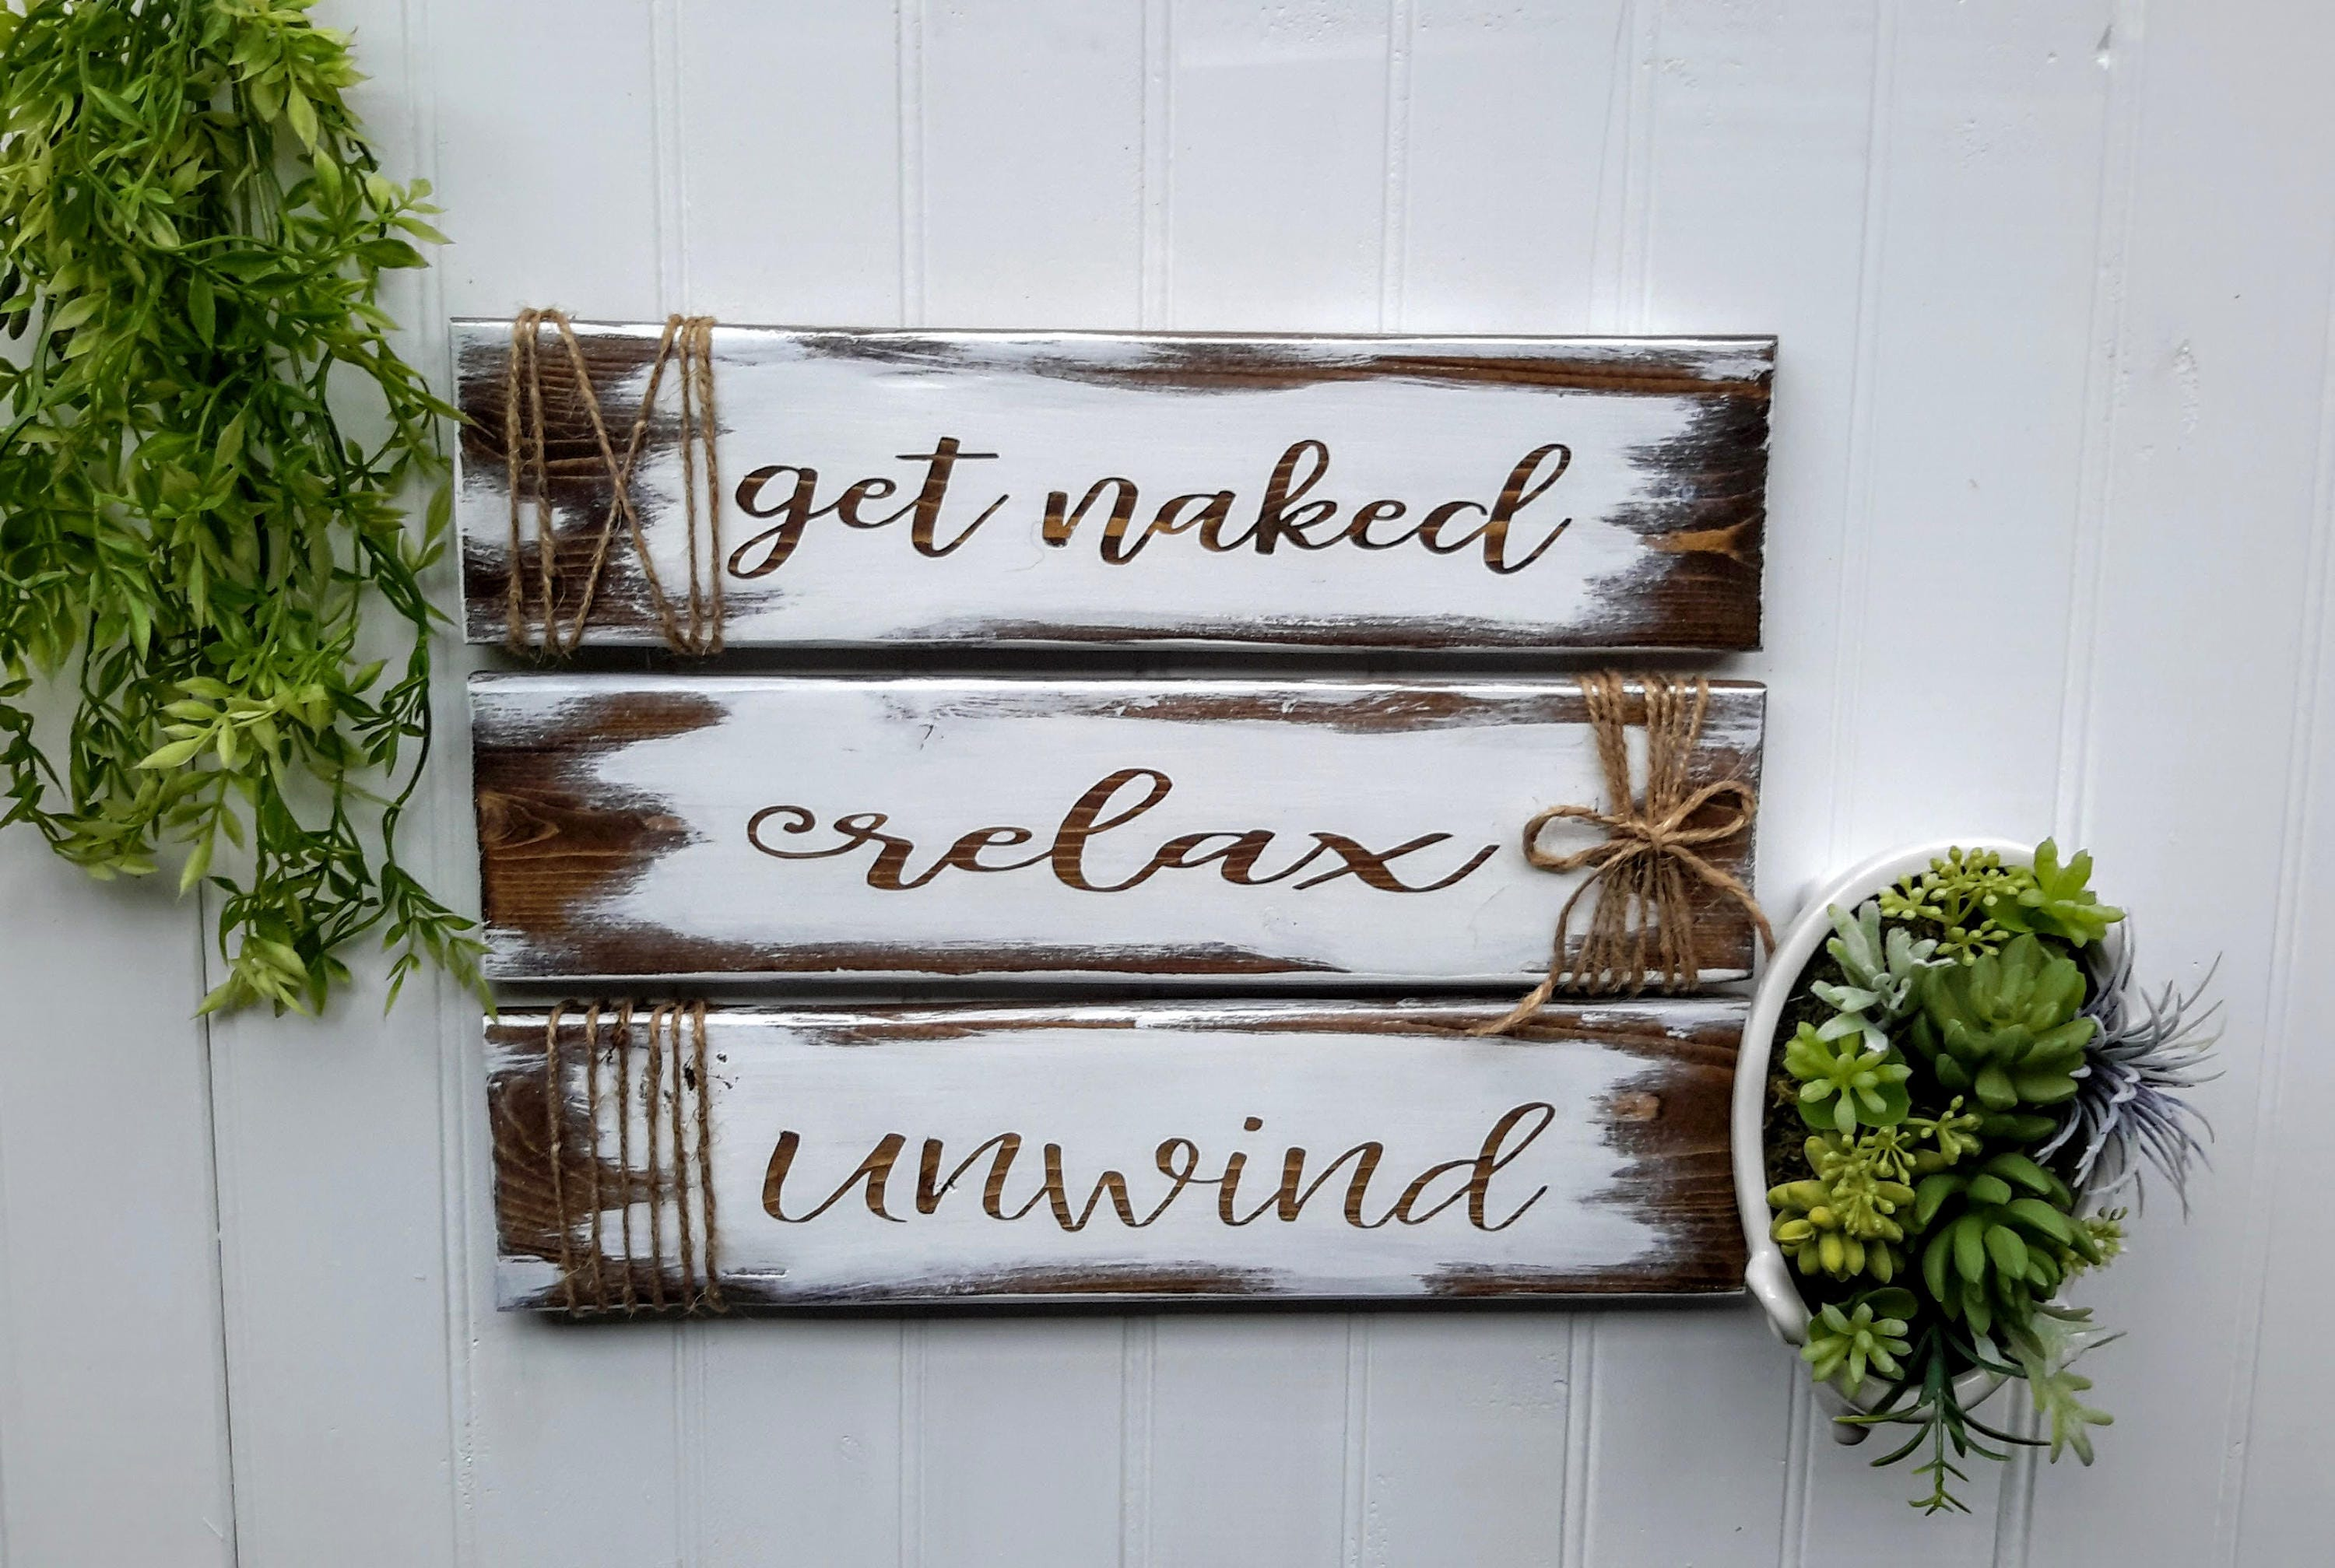 Relax Soak Unwind Bathroom Wall Decor Relax Soak Unwind Sign Bathroom Decor Bathroom Sign Relax Sign